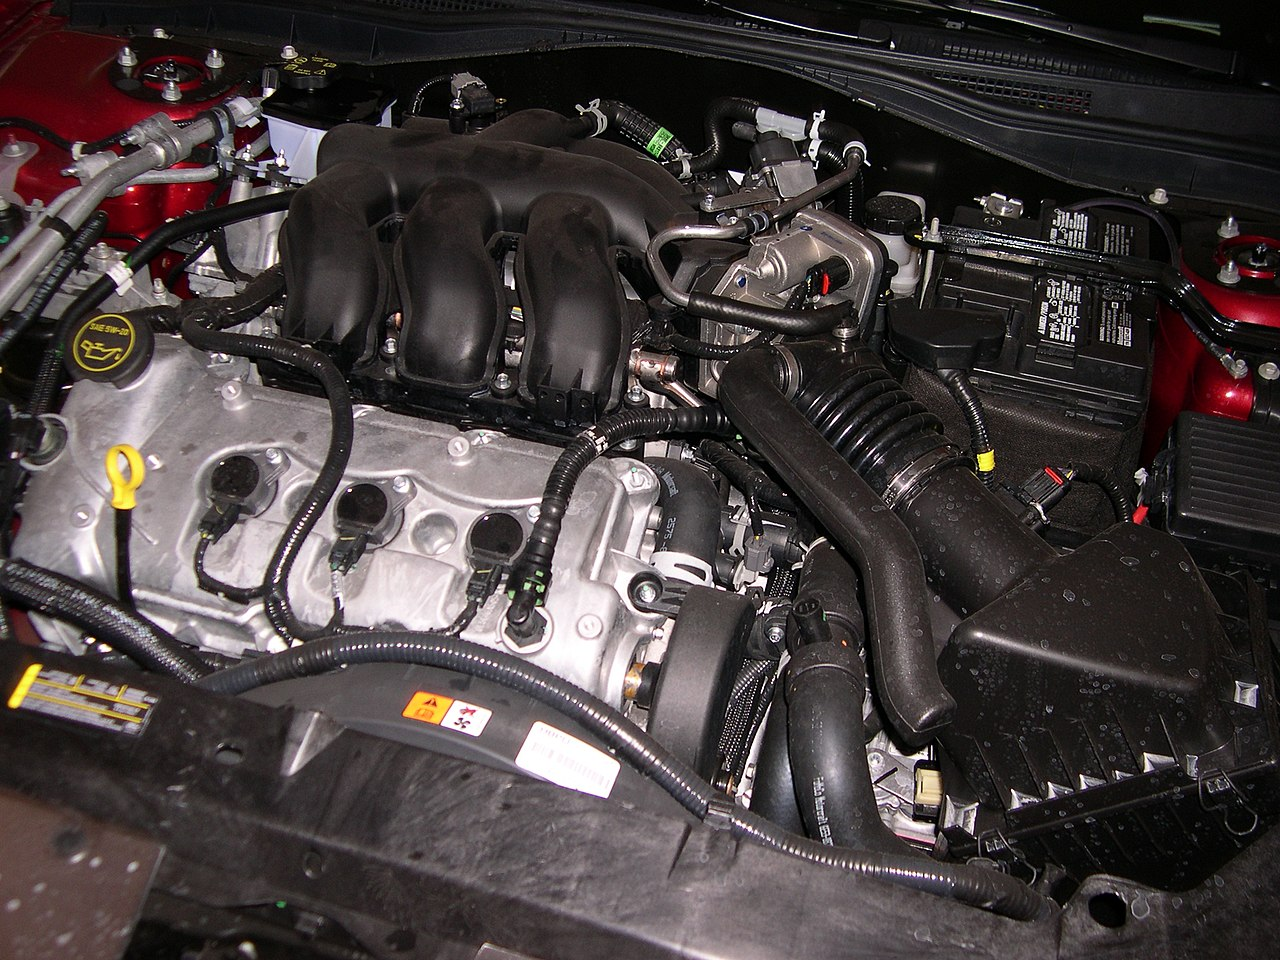 file mercury milan duratec engine jpg file 2006 mercury milan duratec 30 engine jpg